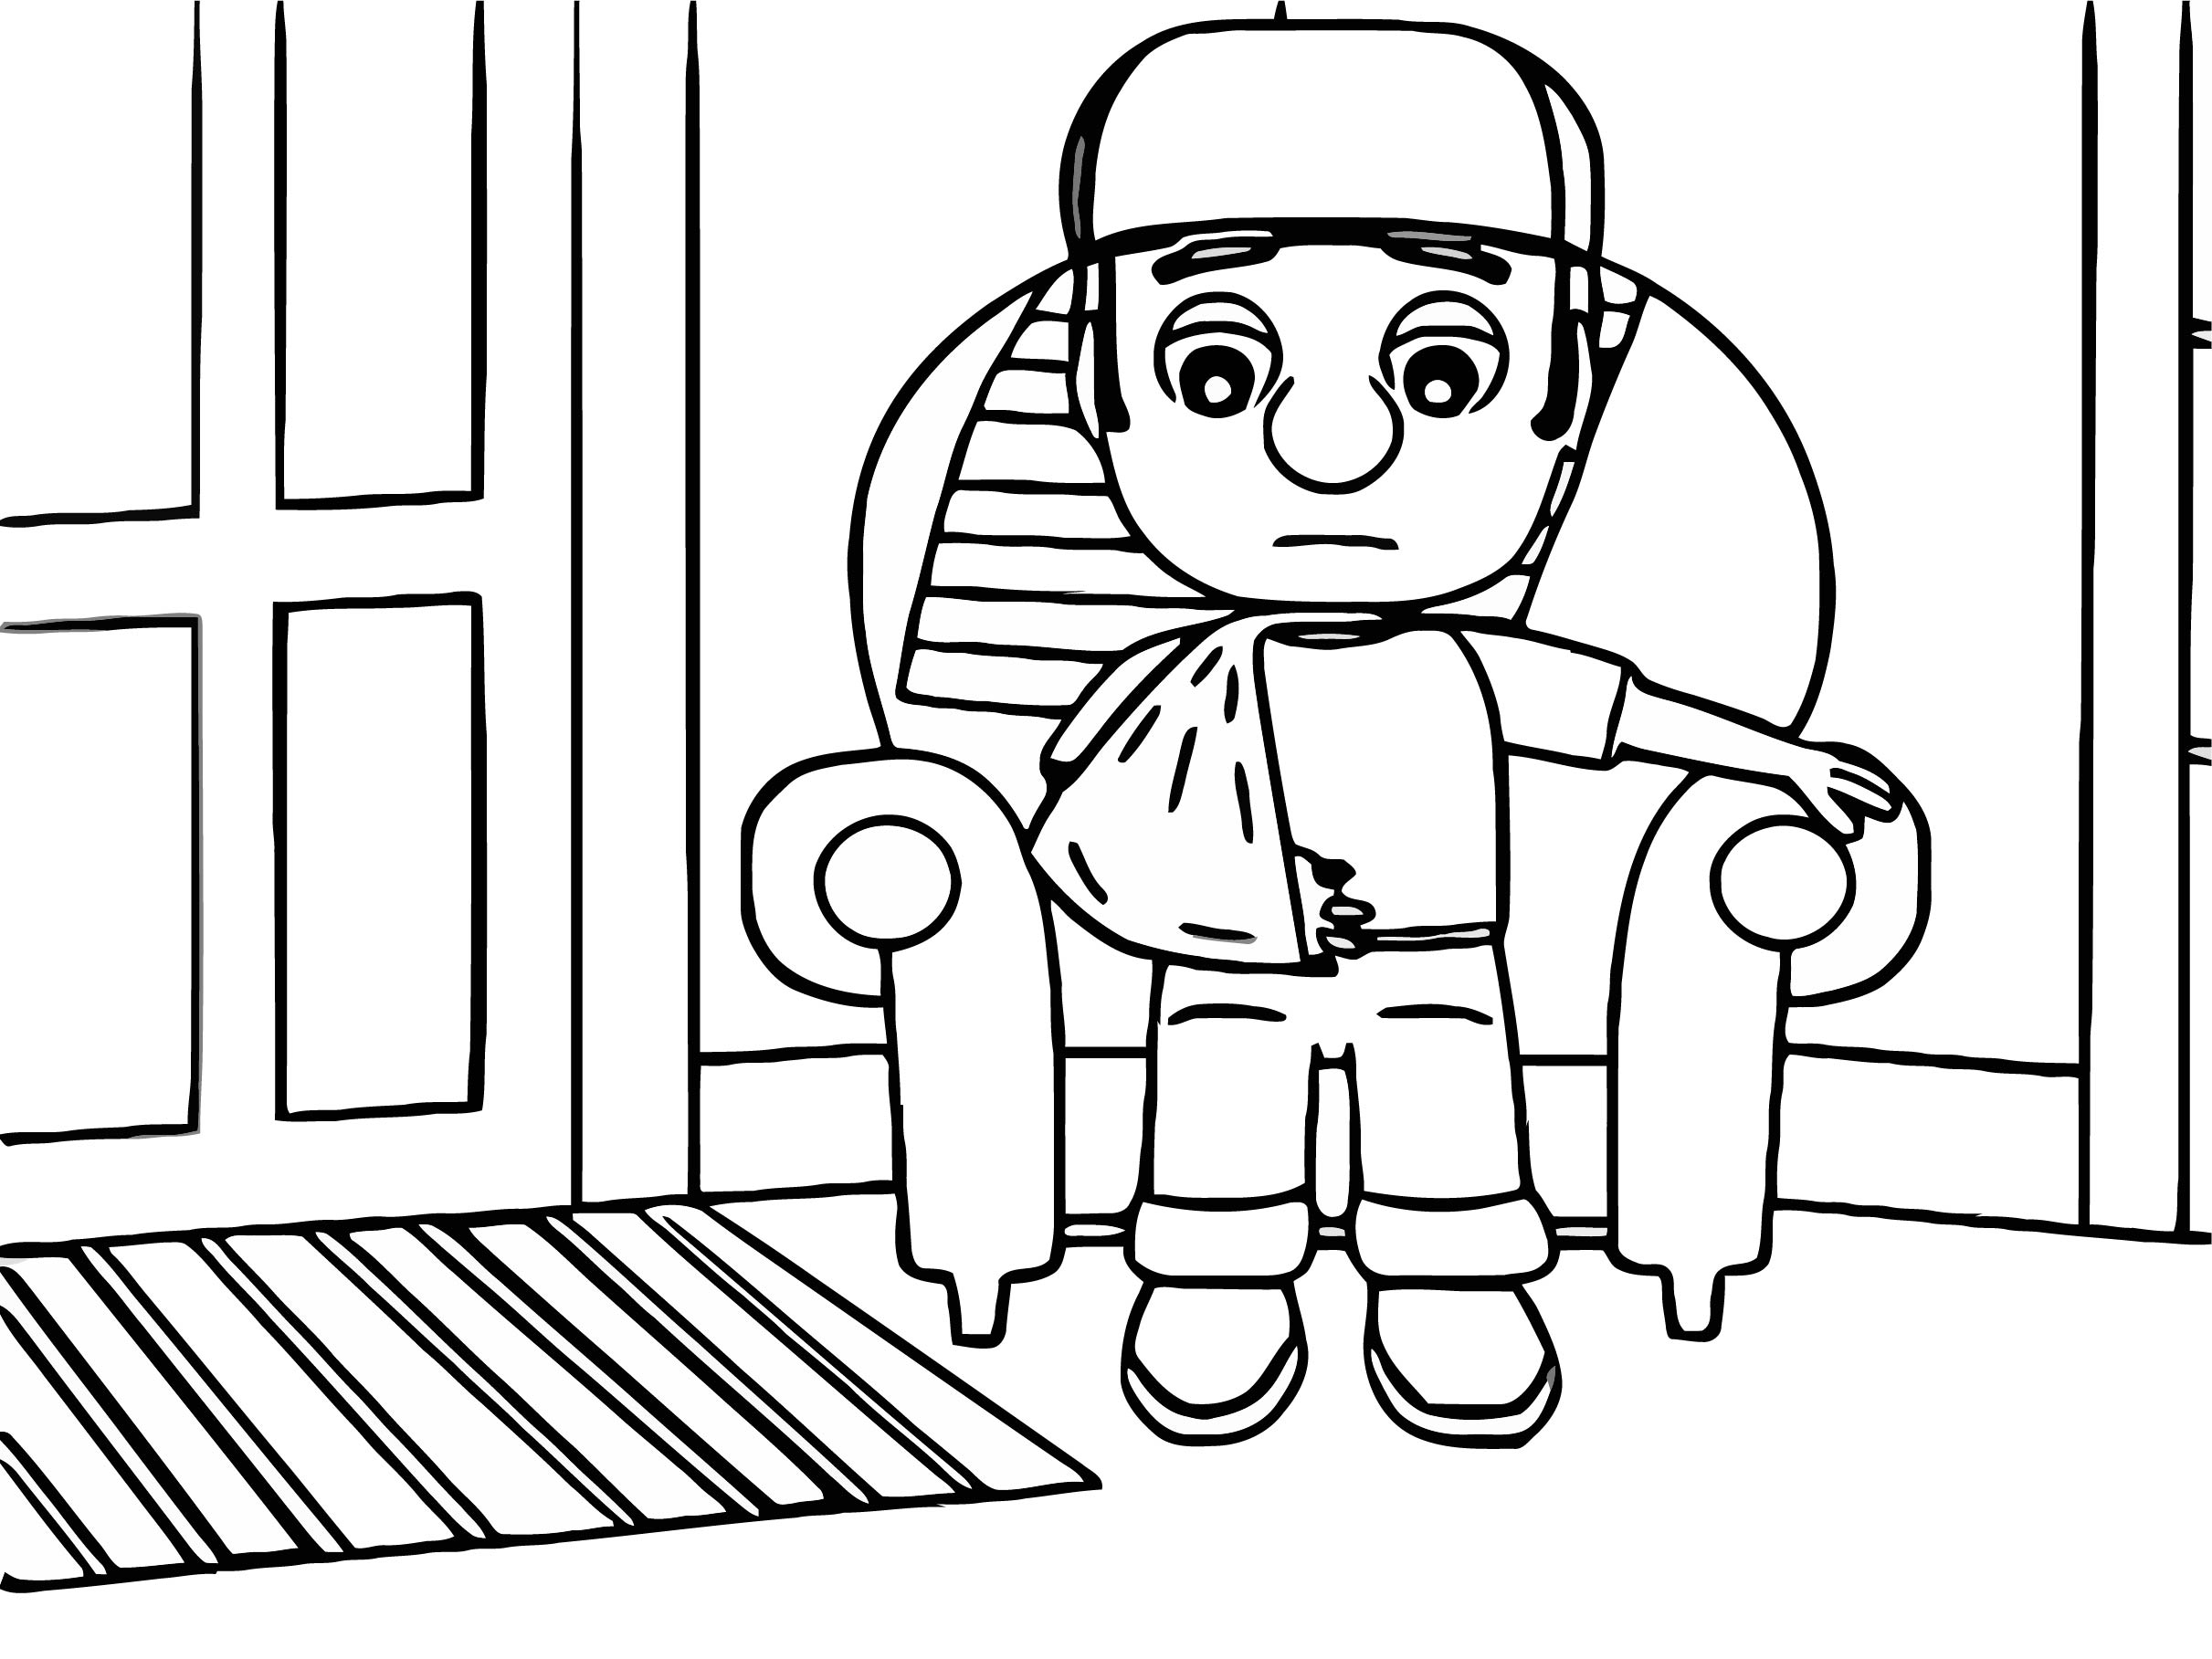 arm coloring pages - photo#20